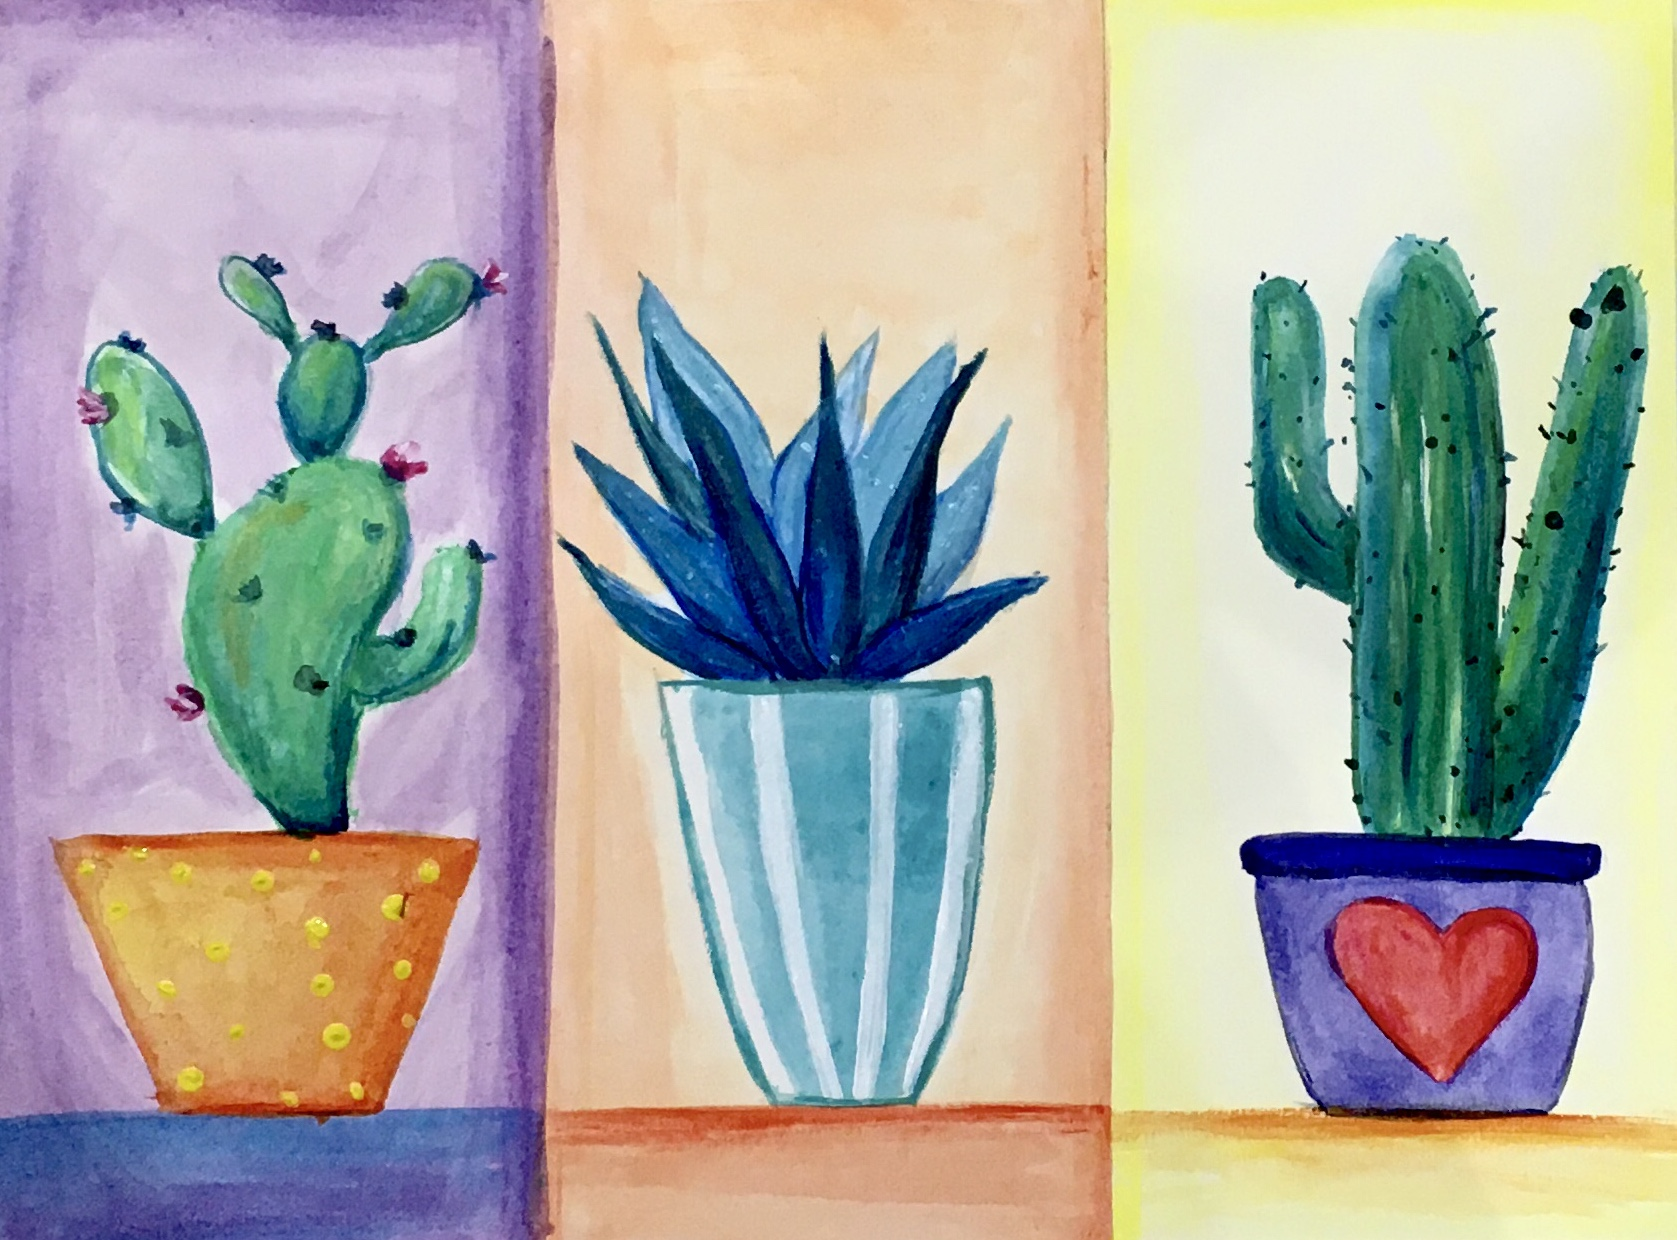 A WatercolourAcrylic Cactus experience project by Yaymaker